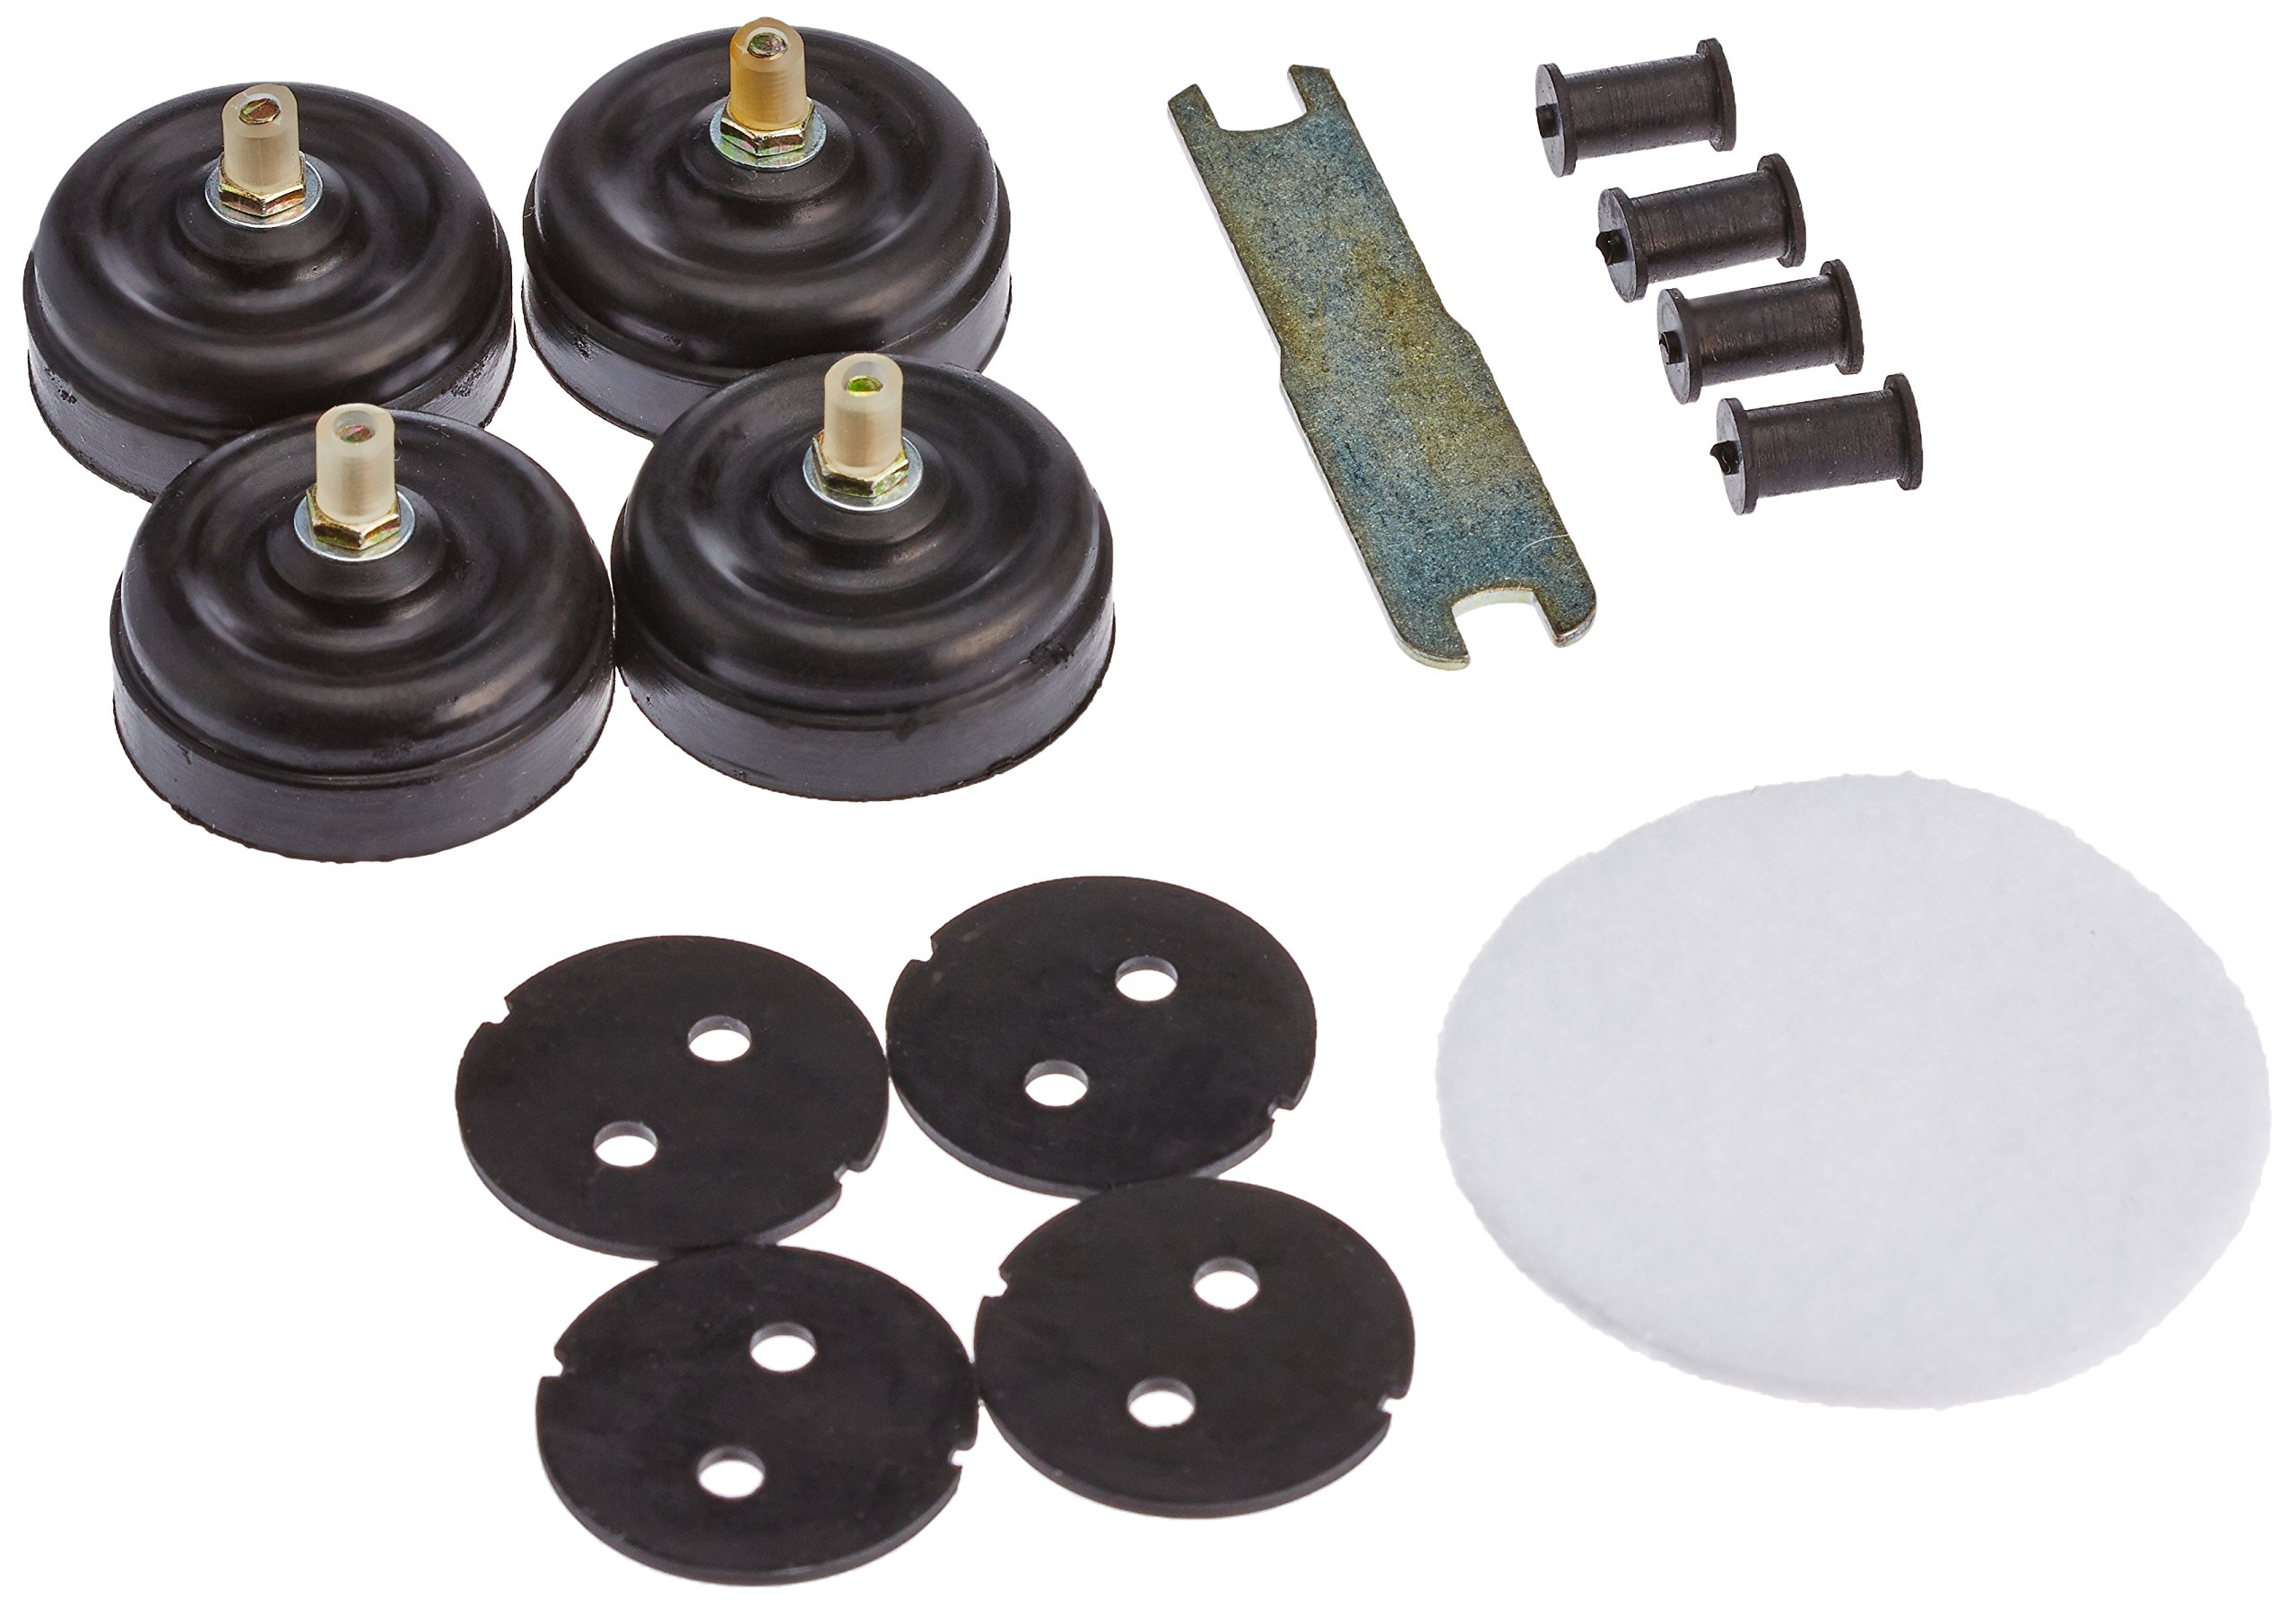 Second Nature Products ASN29523 Repair Kit for Tetratec Dw96-2 and Ap300 Aquarium Air Pumps by Second Nature